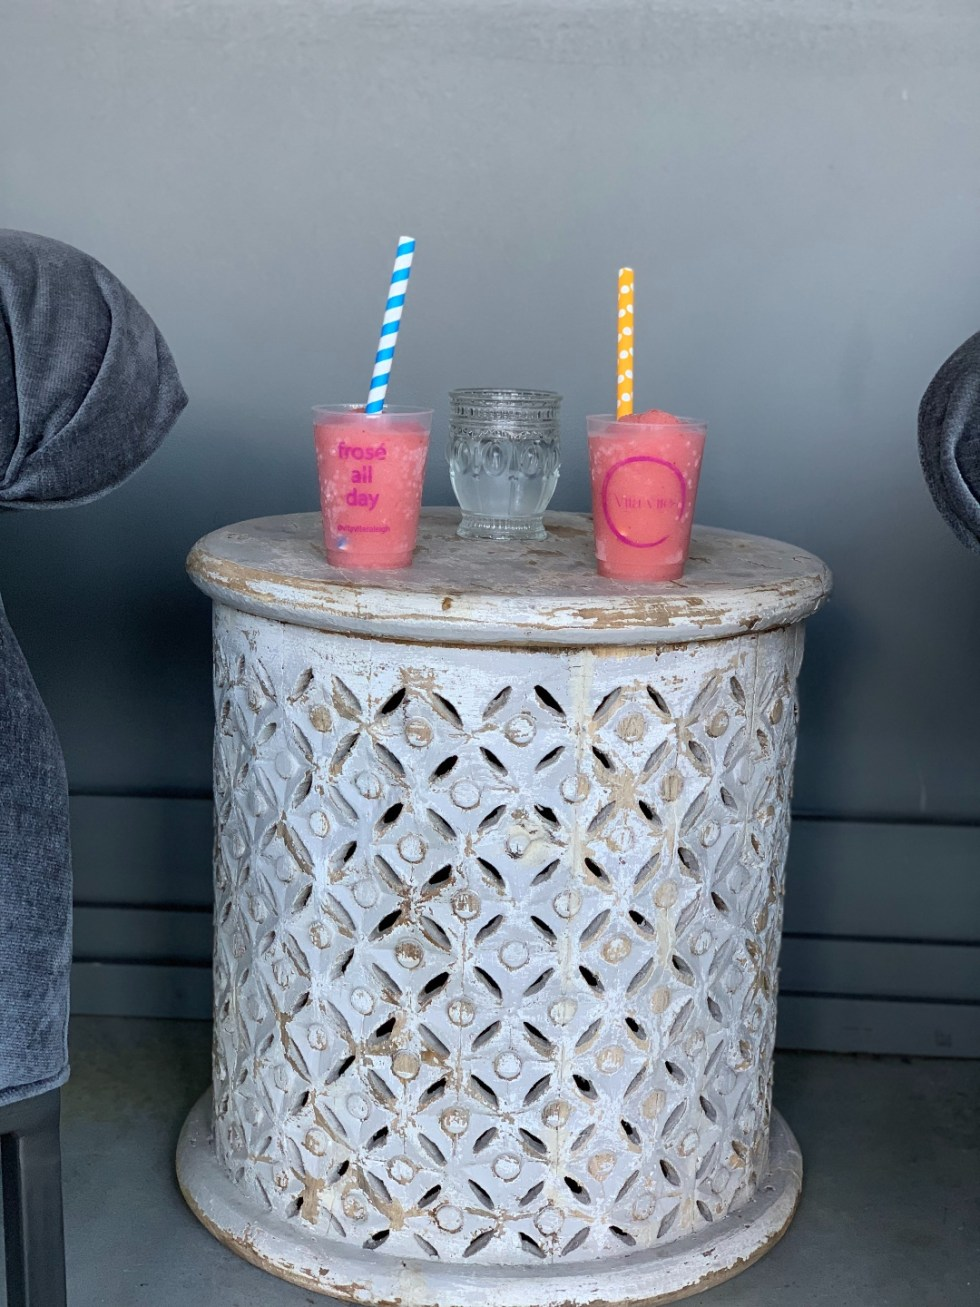 The Ultimate Girls' Day Out in Raleigh - I'm Fixin' To - @imfixintoblog | Girls Day Out In Raleigh by popular NC lifestyle blog, I'm Fixin' To: image of two clear plastic cups filled with Frose and paper straws.